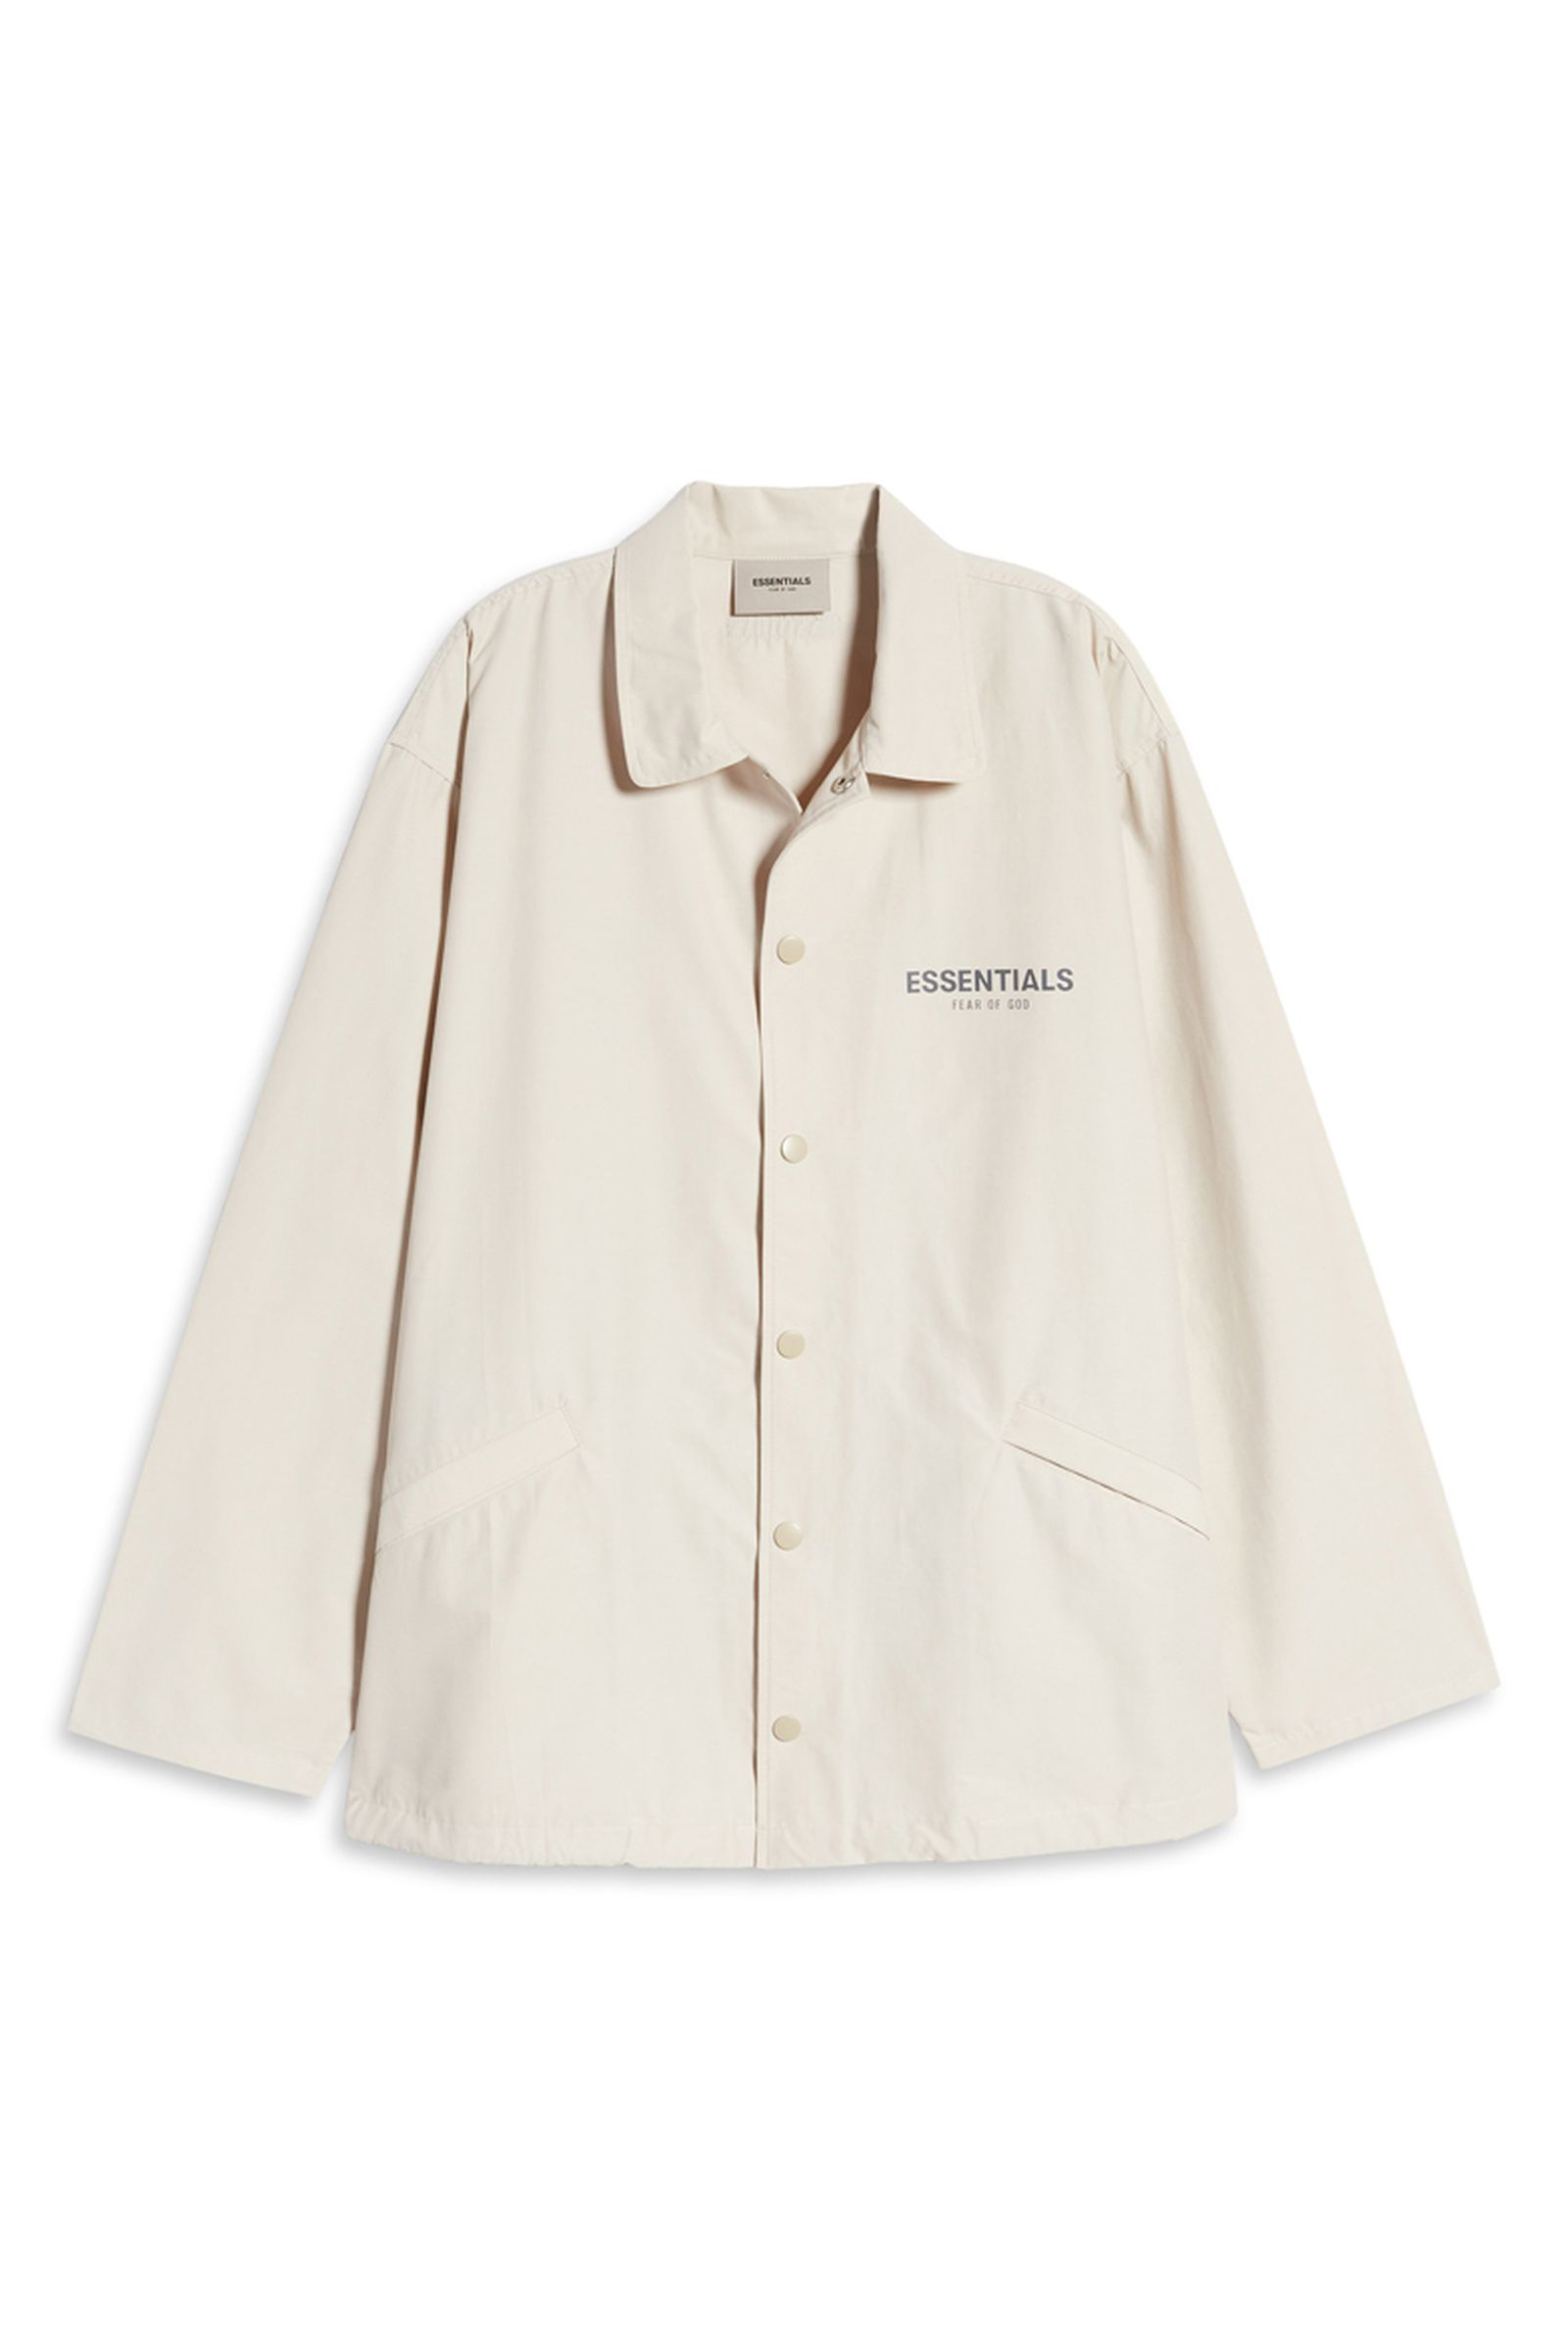 fear of god essentials nordstrom exclusive (3)